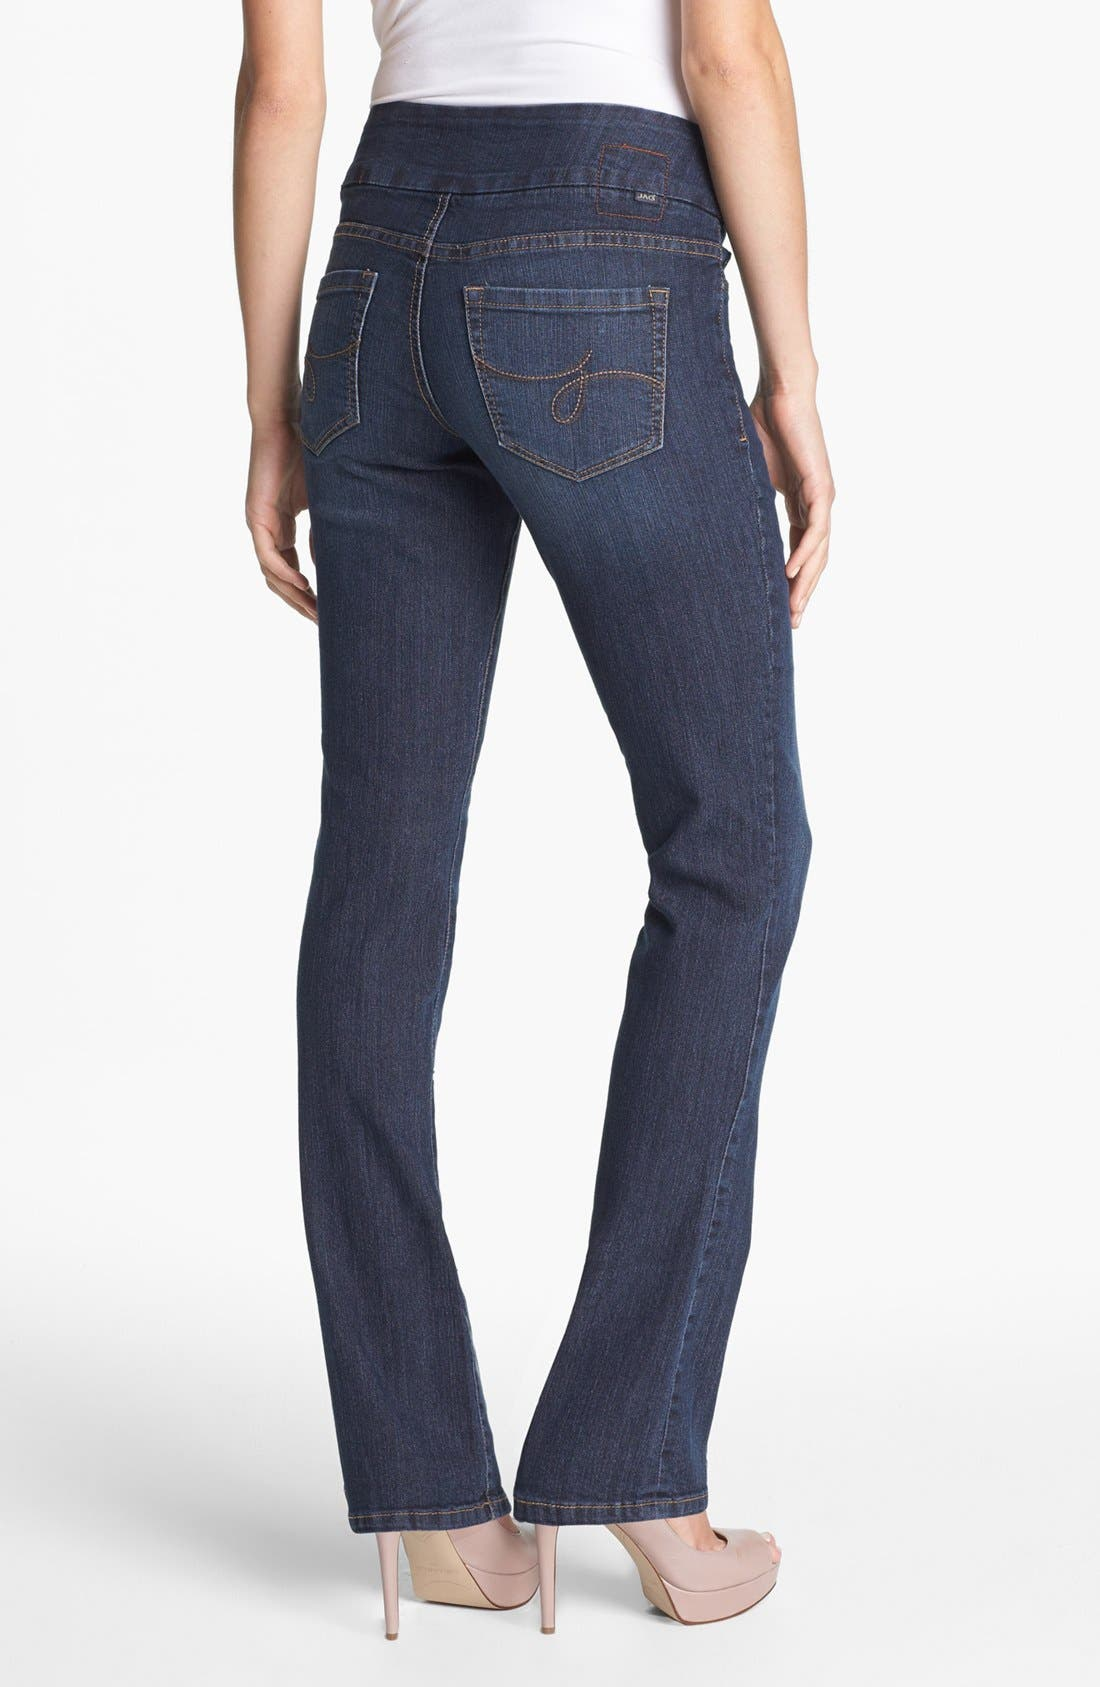 Alternate Image 2  - Jag Jeans 'Paley' Pull-On Bootcut Jeans (Atlantic Blue) (Petite)